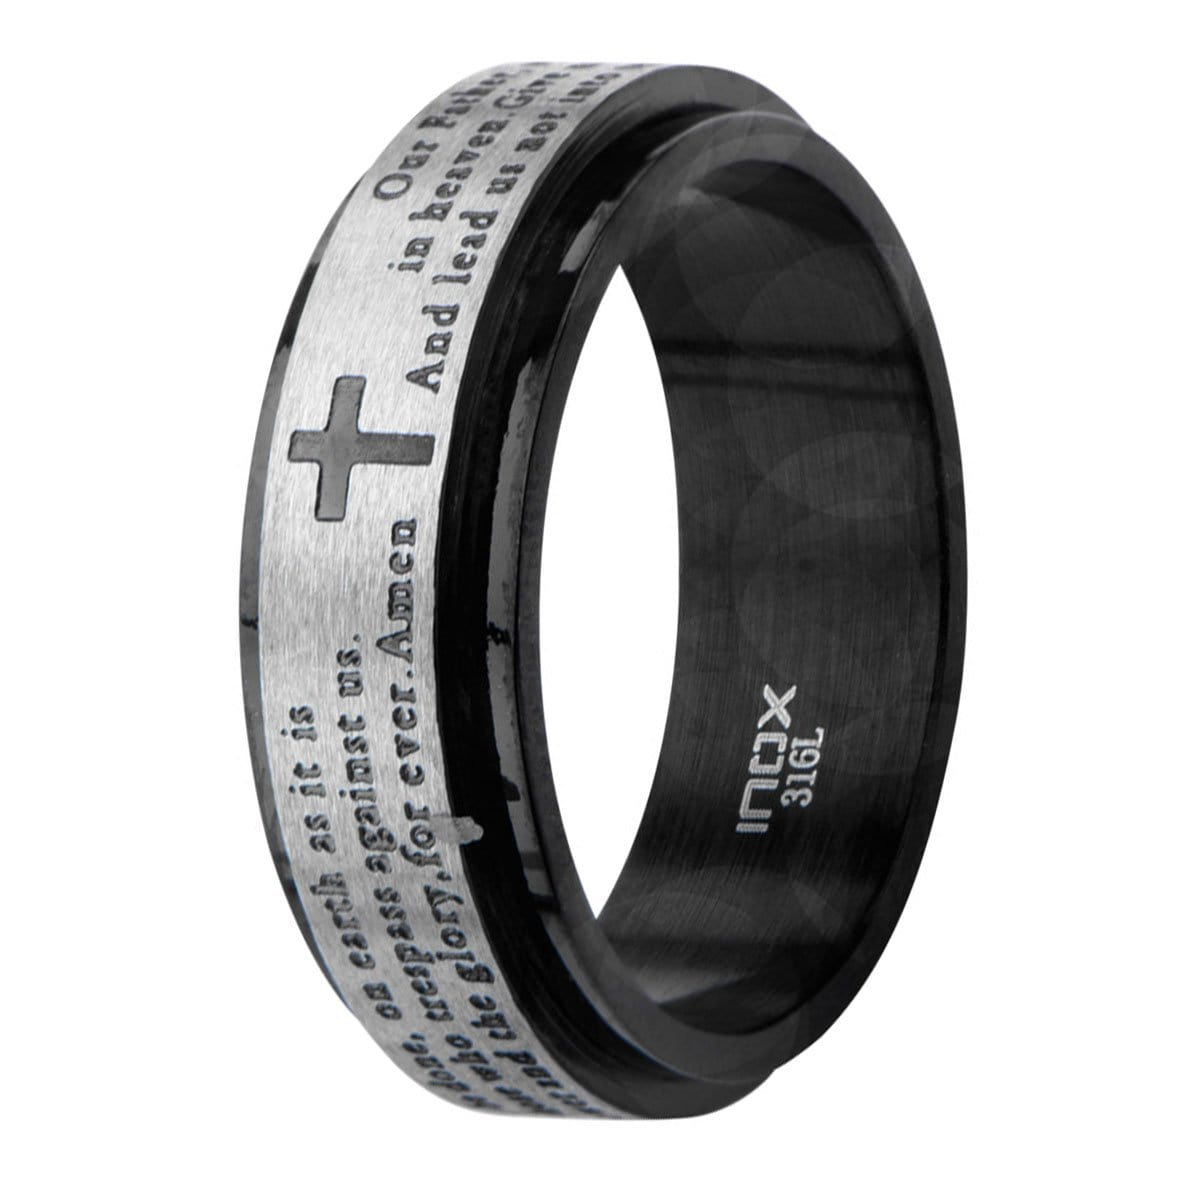 Black & Silver Stainless Steel Prayer Ring